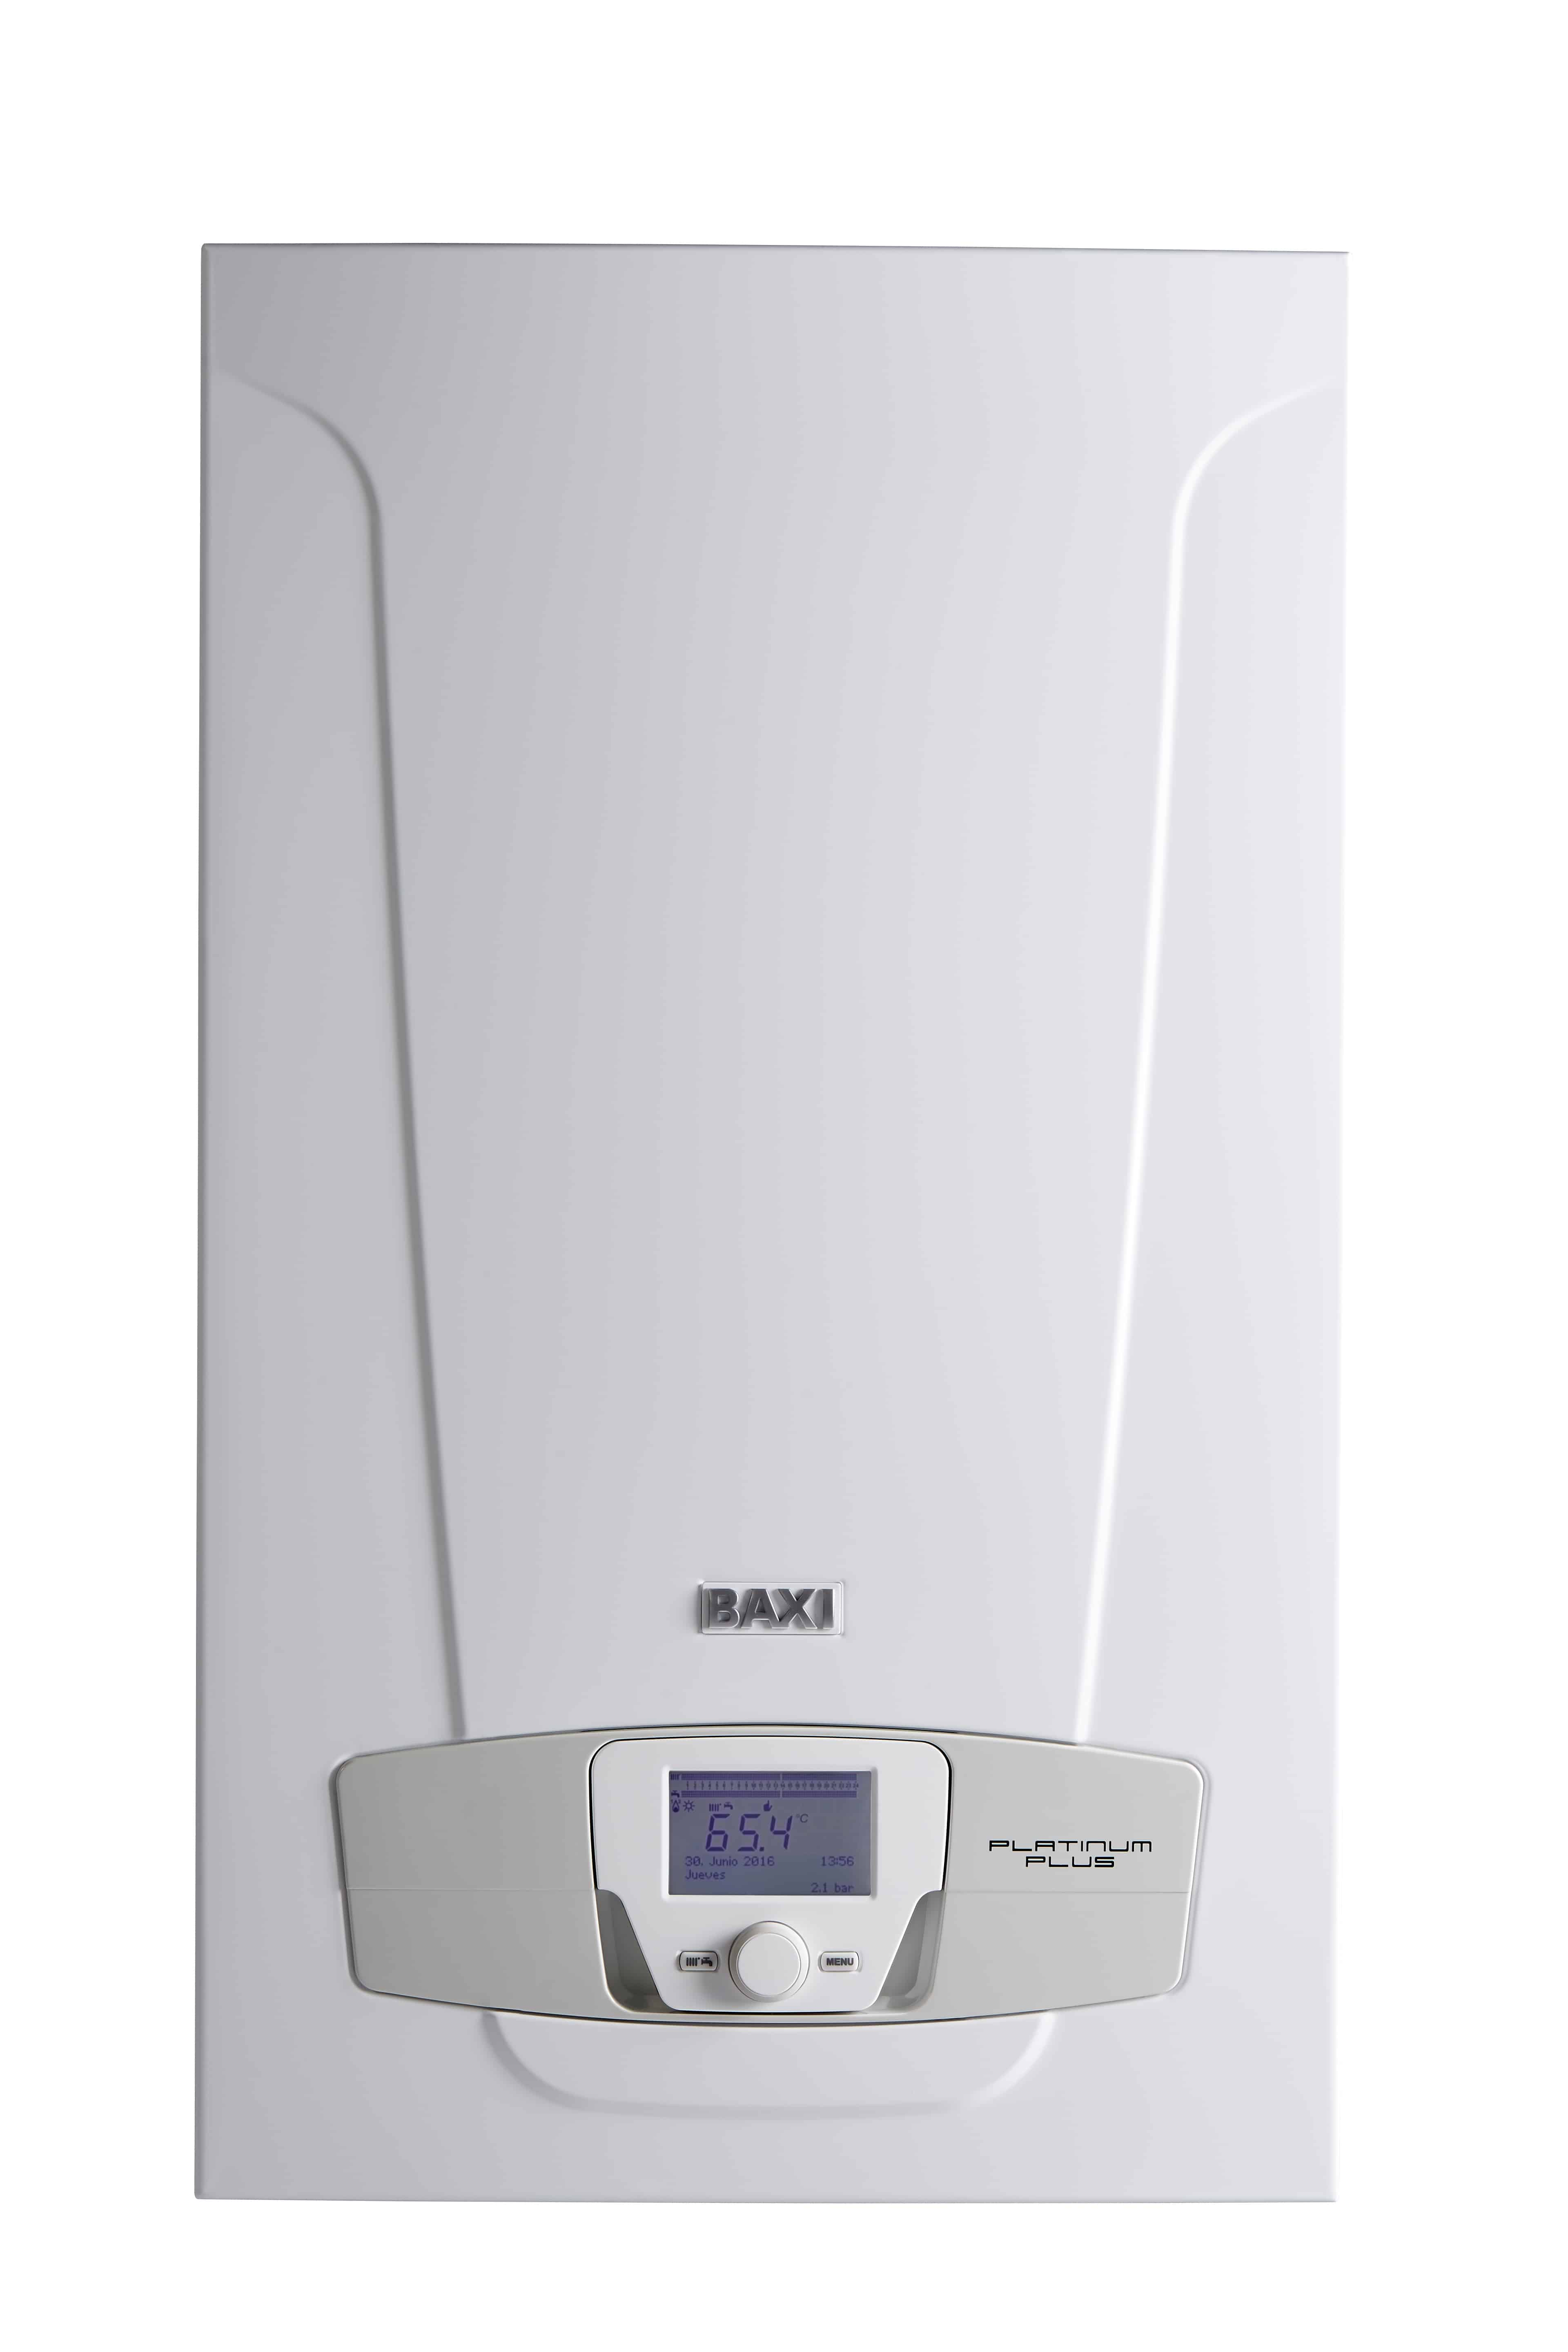 BAXI_Platinum Plus_Central